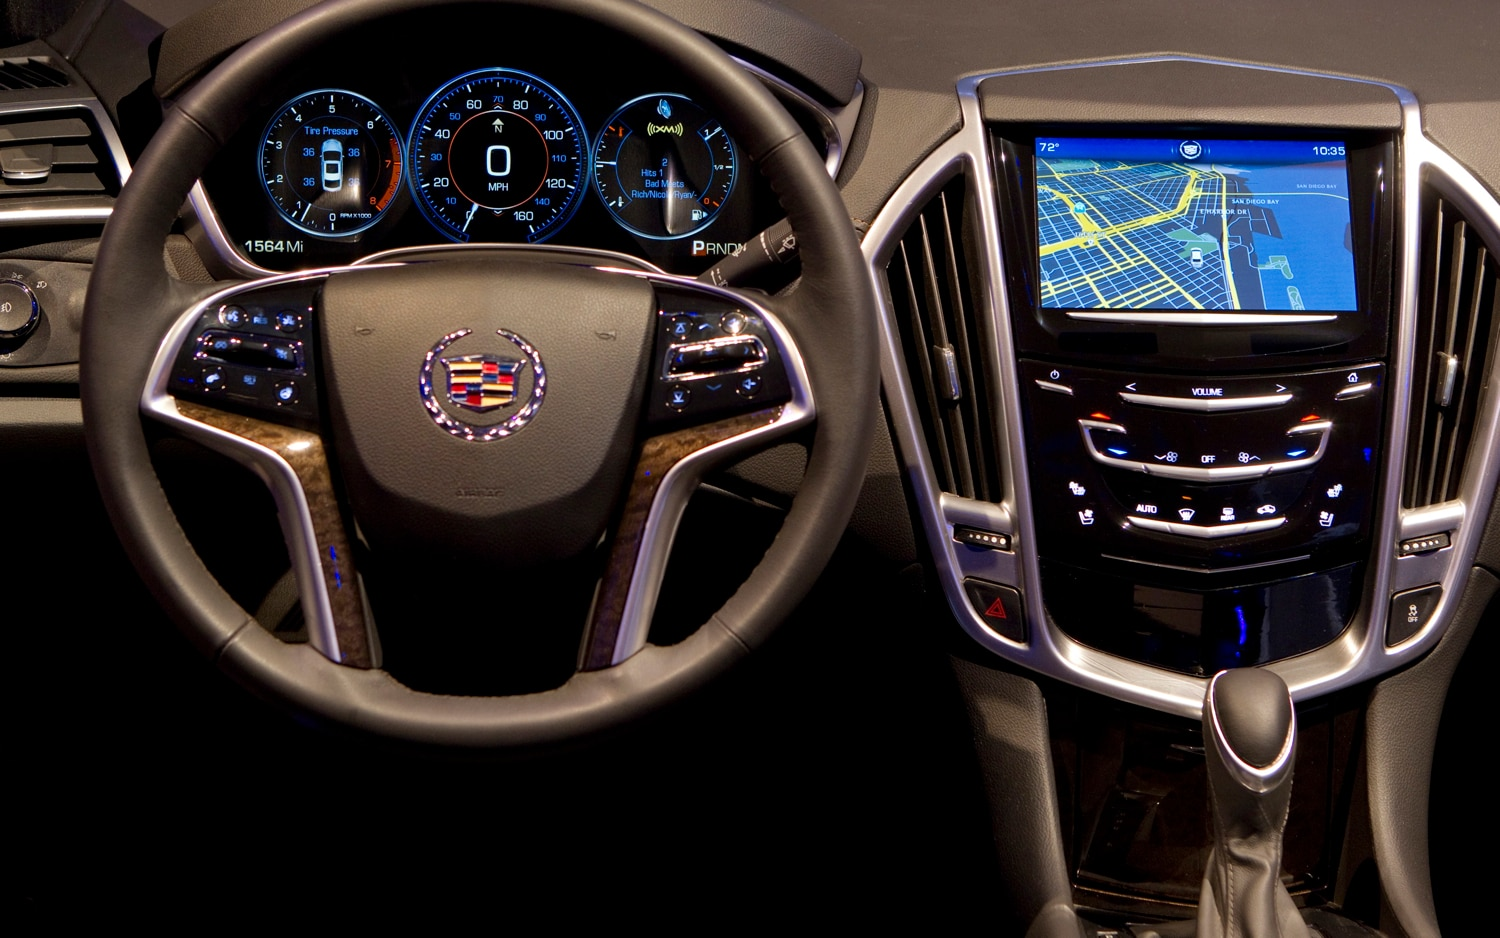 New York 2012 2013 Cadillac Srx Is Forward Looking With Cue 1951 Fleetwood 60 Special Show More